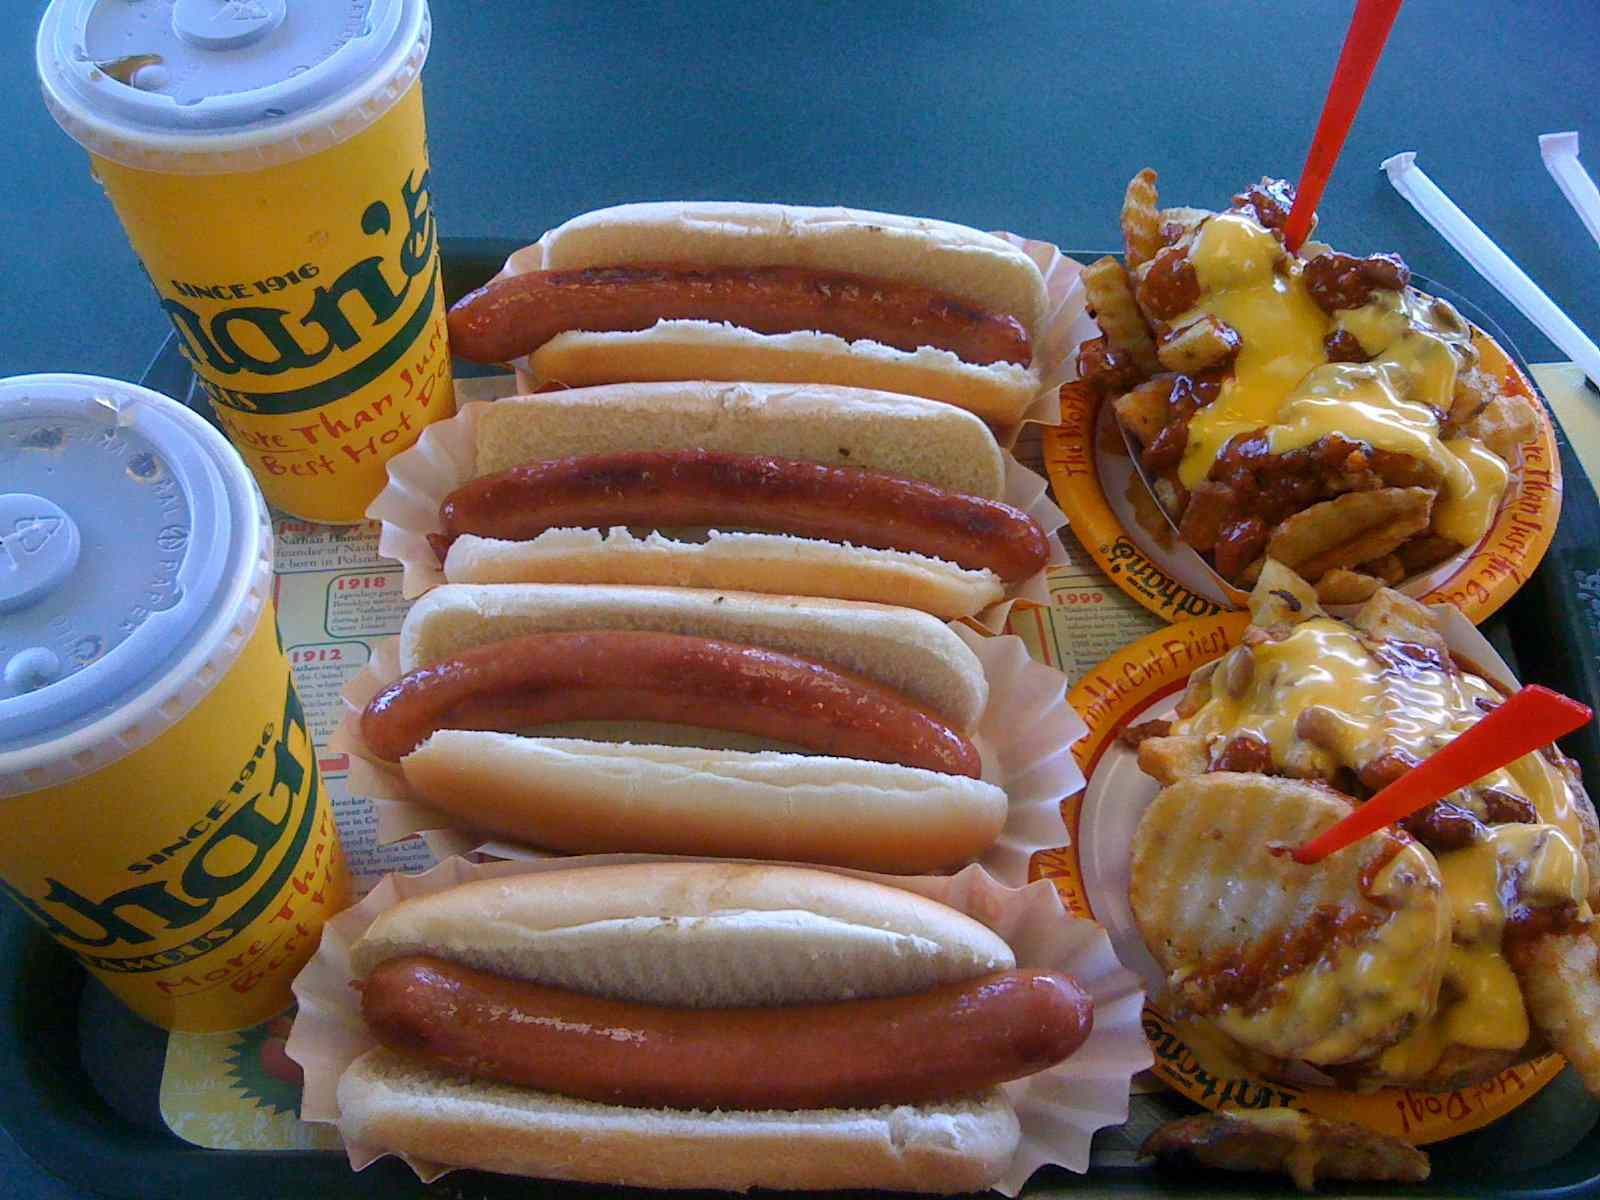 Nathan's Hot Dogs Plus Chili Cheese Fries